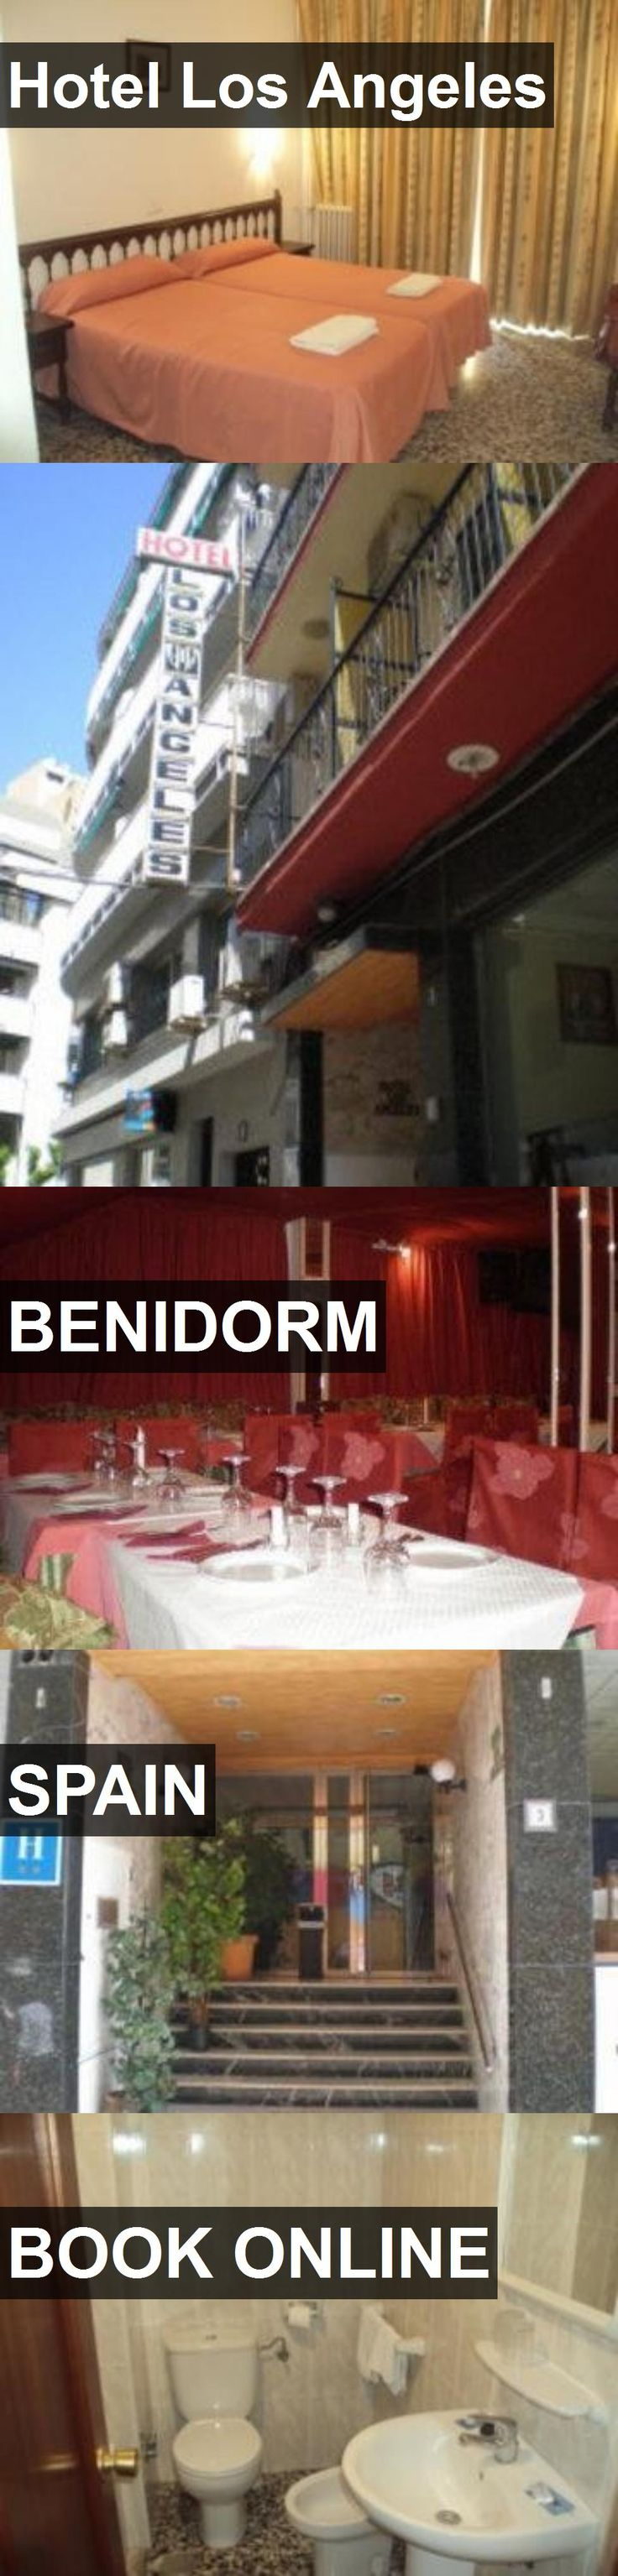 Hotel Hotel Los Angeles in Benidorm, Spain. For more information, photos, reviews and best prices please follow the link. #Spain #Benidorm #HotelLosAngeles #hotel #travel #vacation